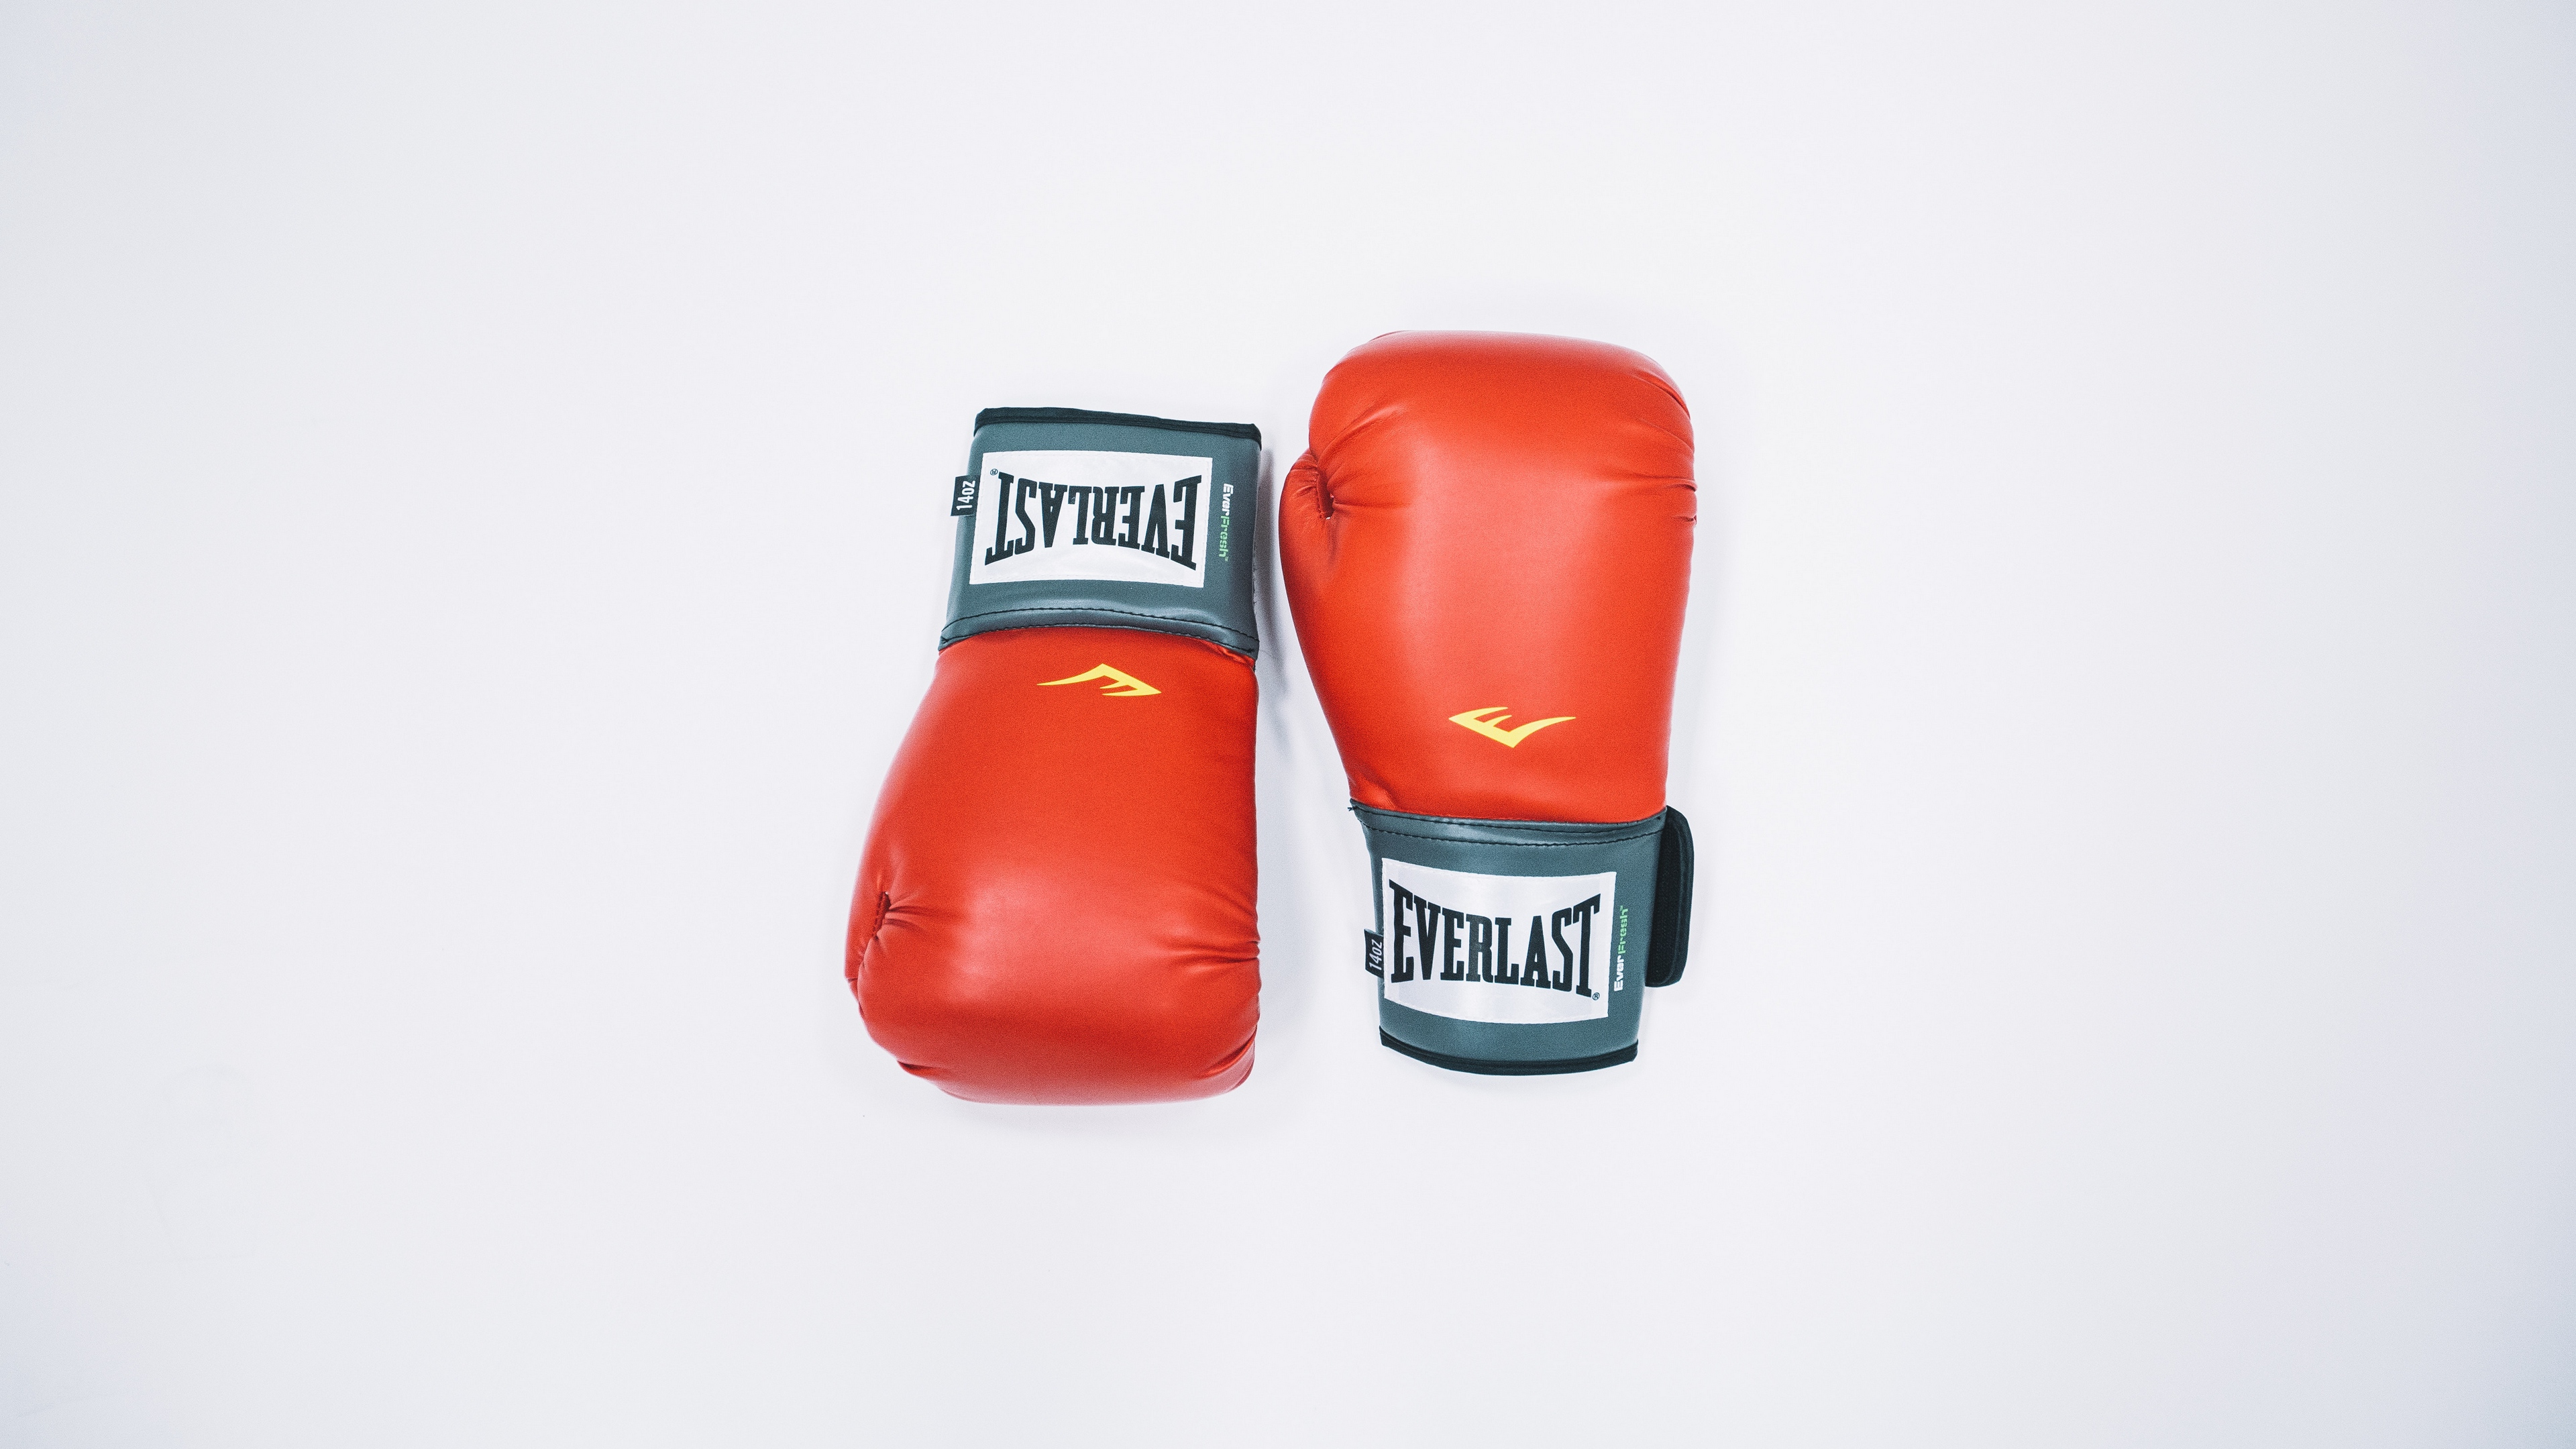 boxing gloves boxing sports minimalism 4k 1540061889 - boxing gloves, boxing, sports, minimalism 4k - Sports, boxing gloves, boxing